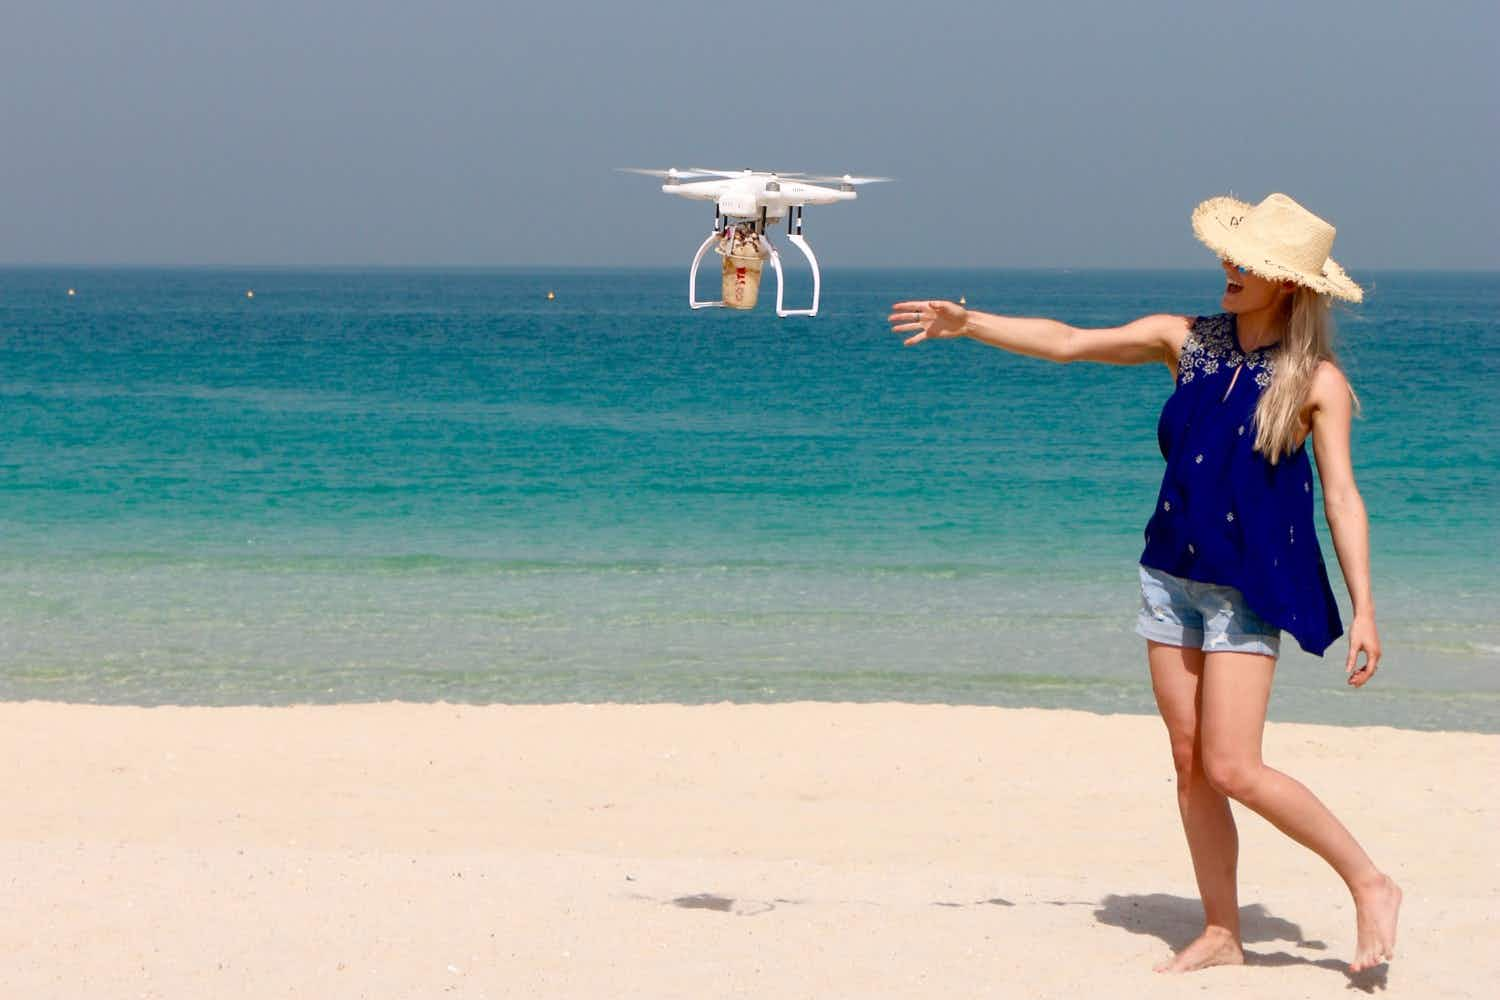 Fancy having your coffee delivered by drone? Introducing the Coffee-Copter